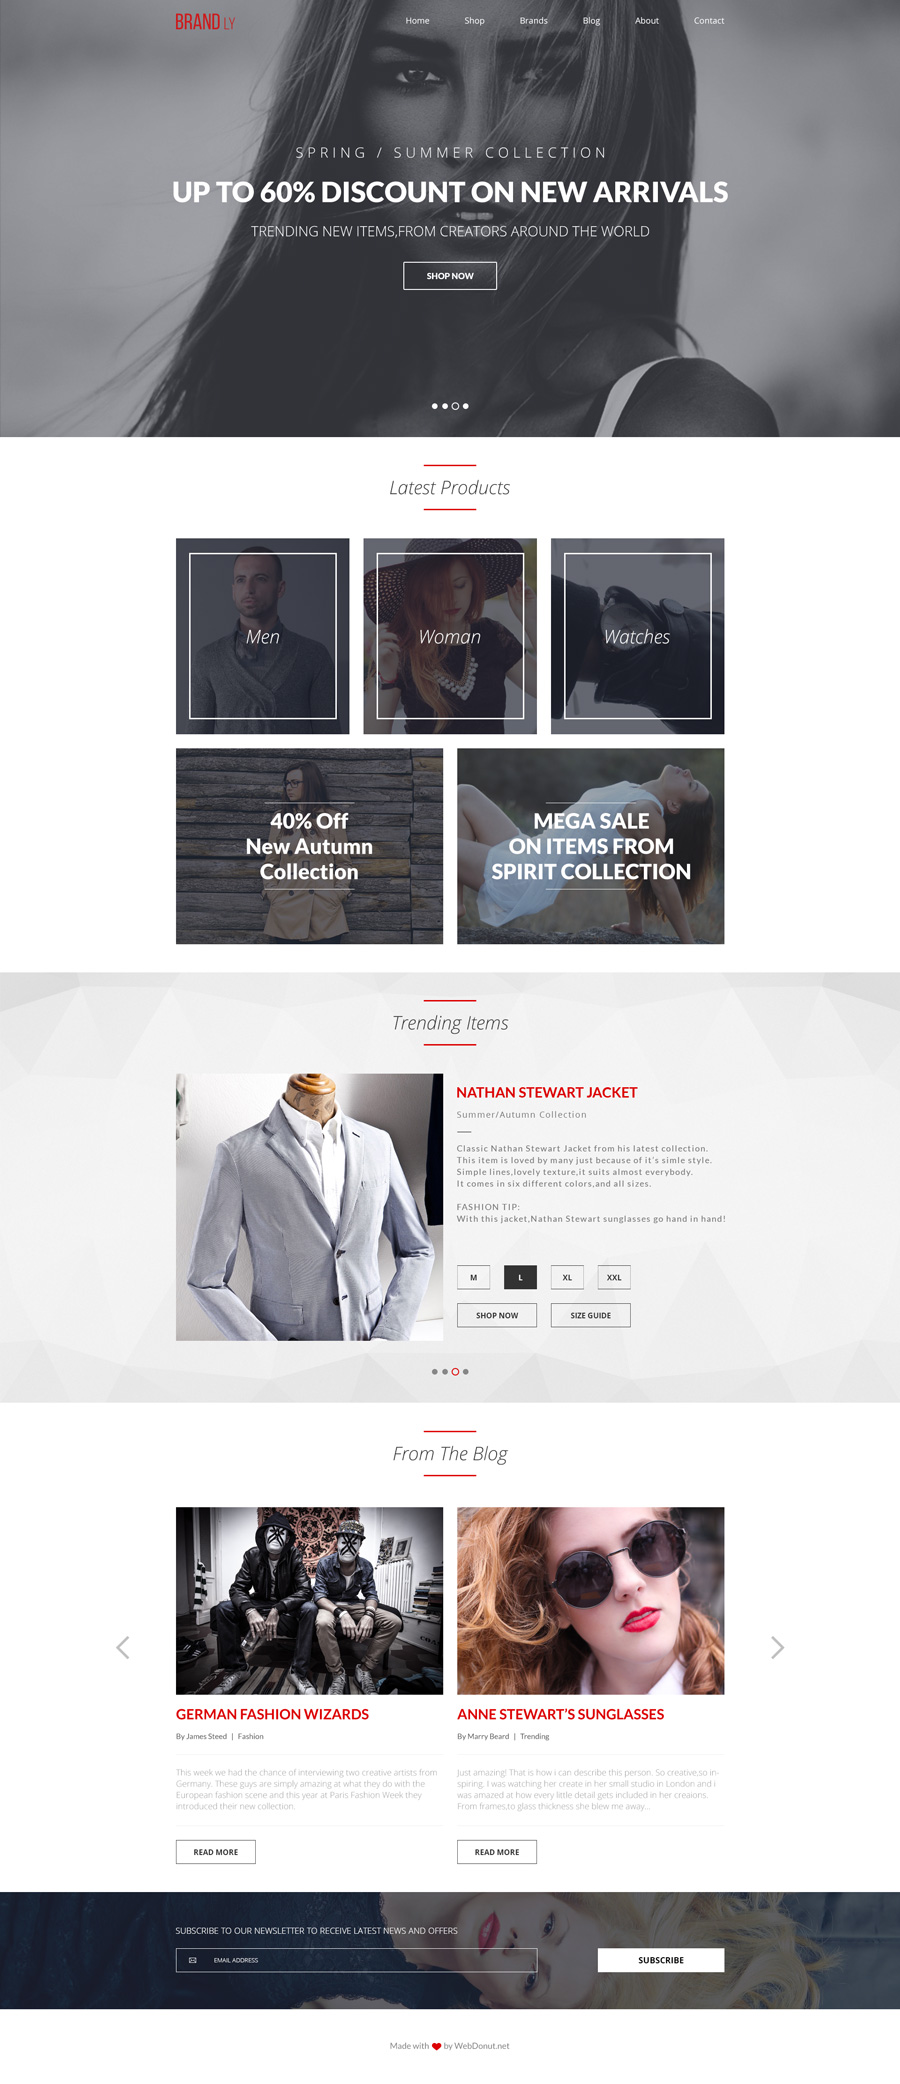 Free-PSD-website-template